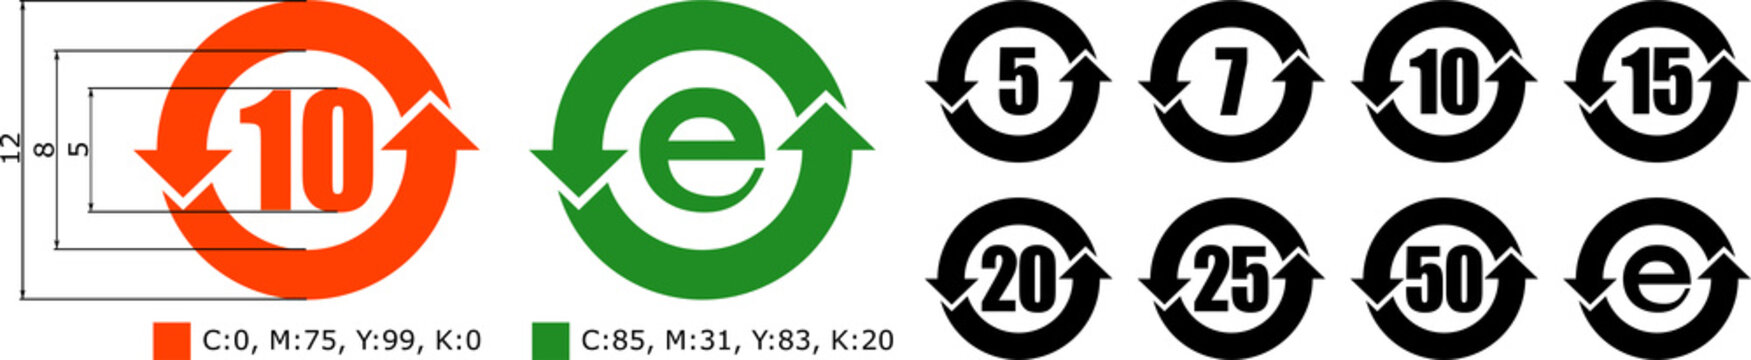 China RoHS - RoHS of Hazardous Substances, or Environment Friendly Use Period icons set (5 7 10 15 20 25 50 years and e symbol) with construction sheet